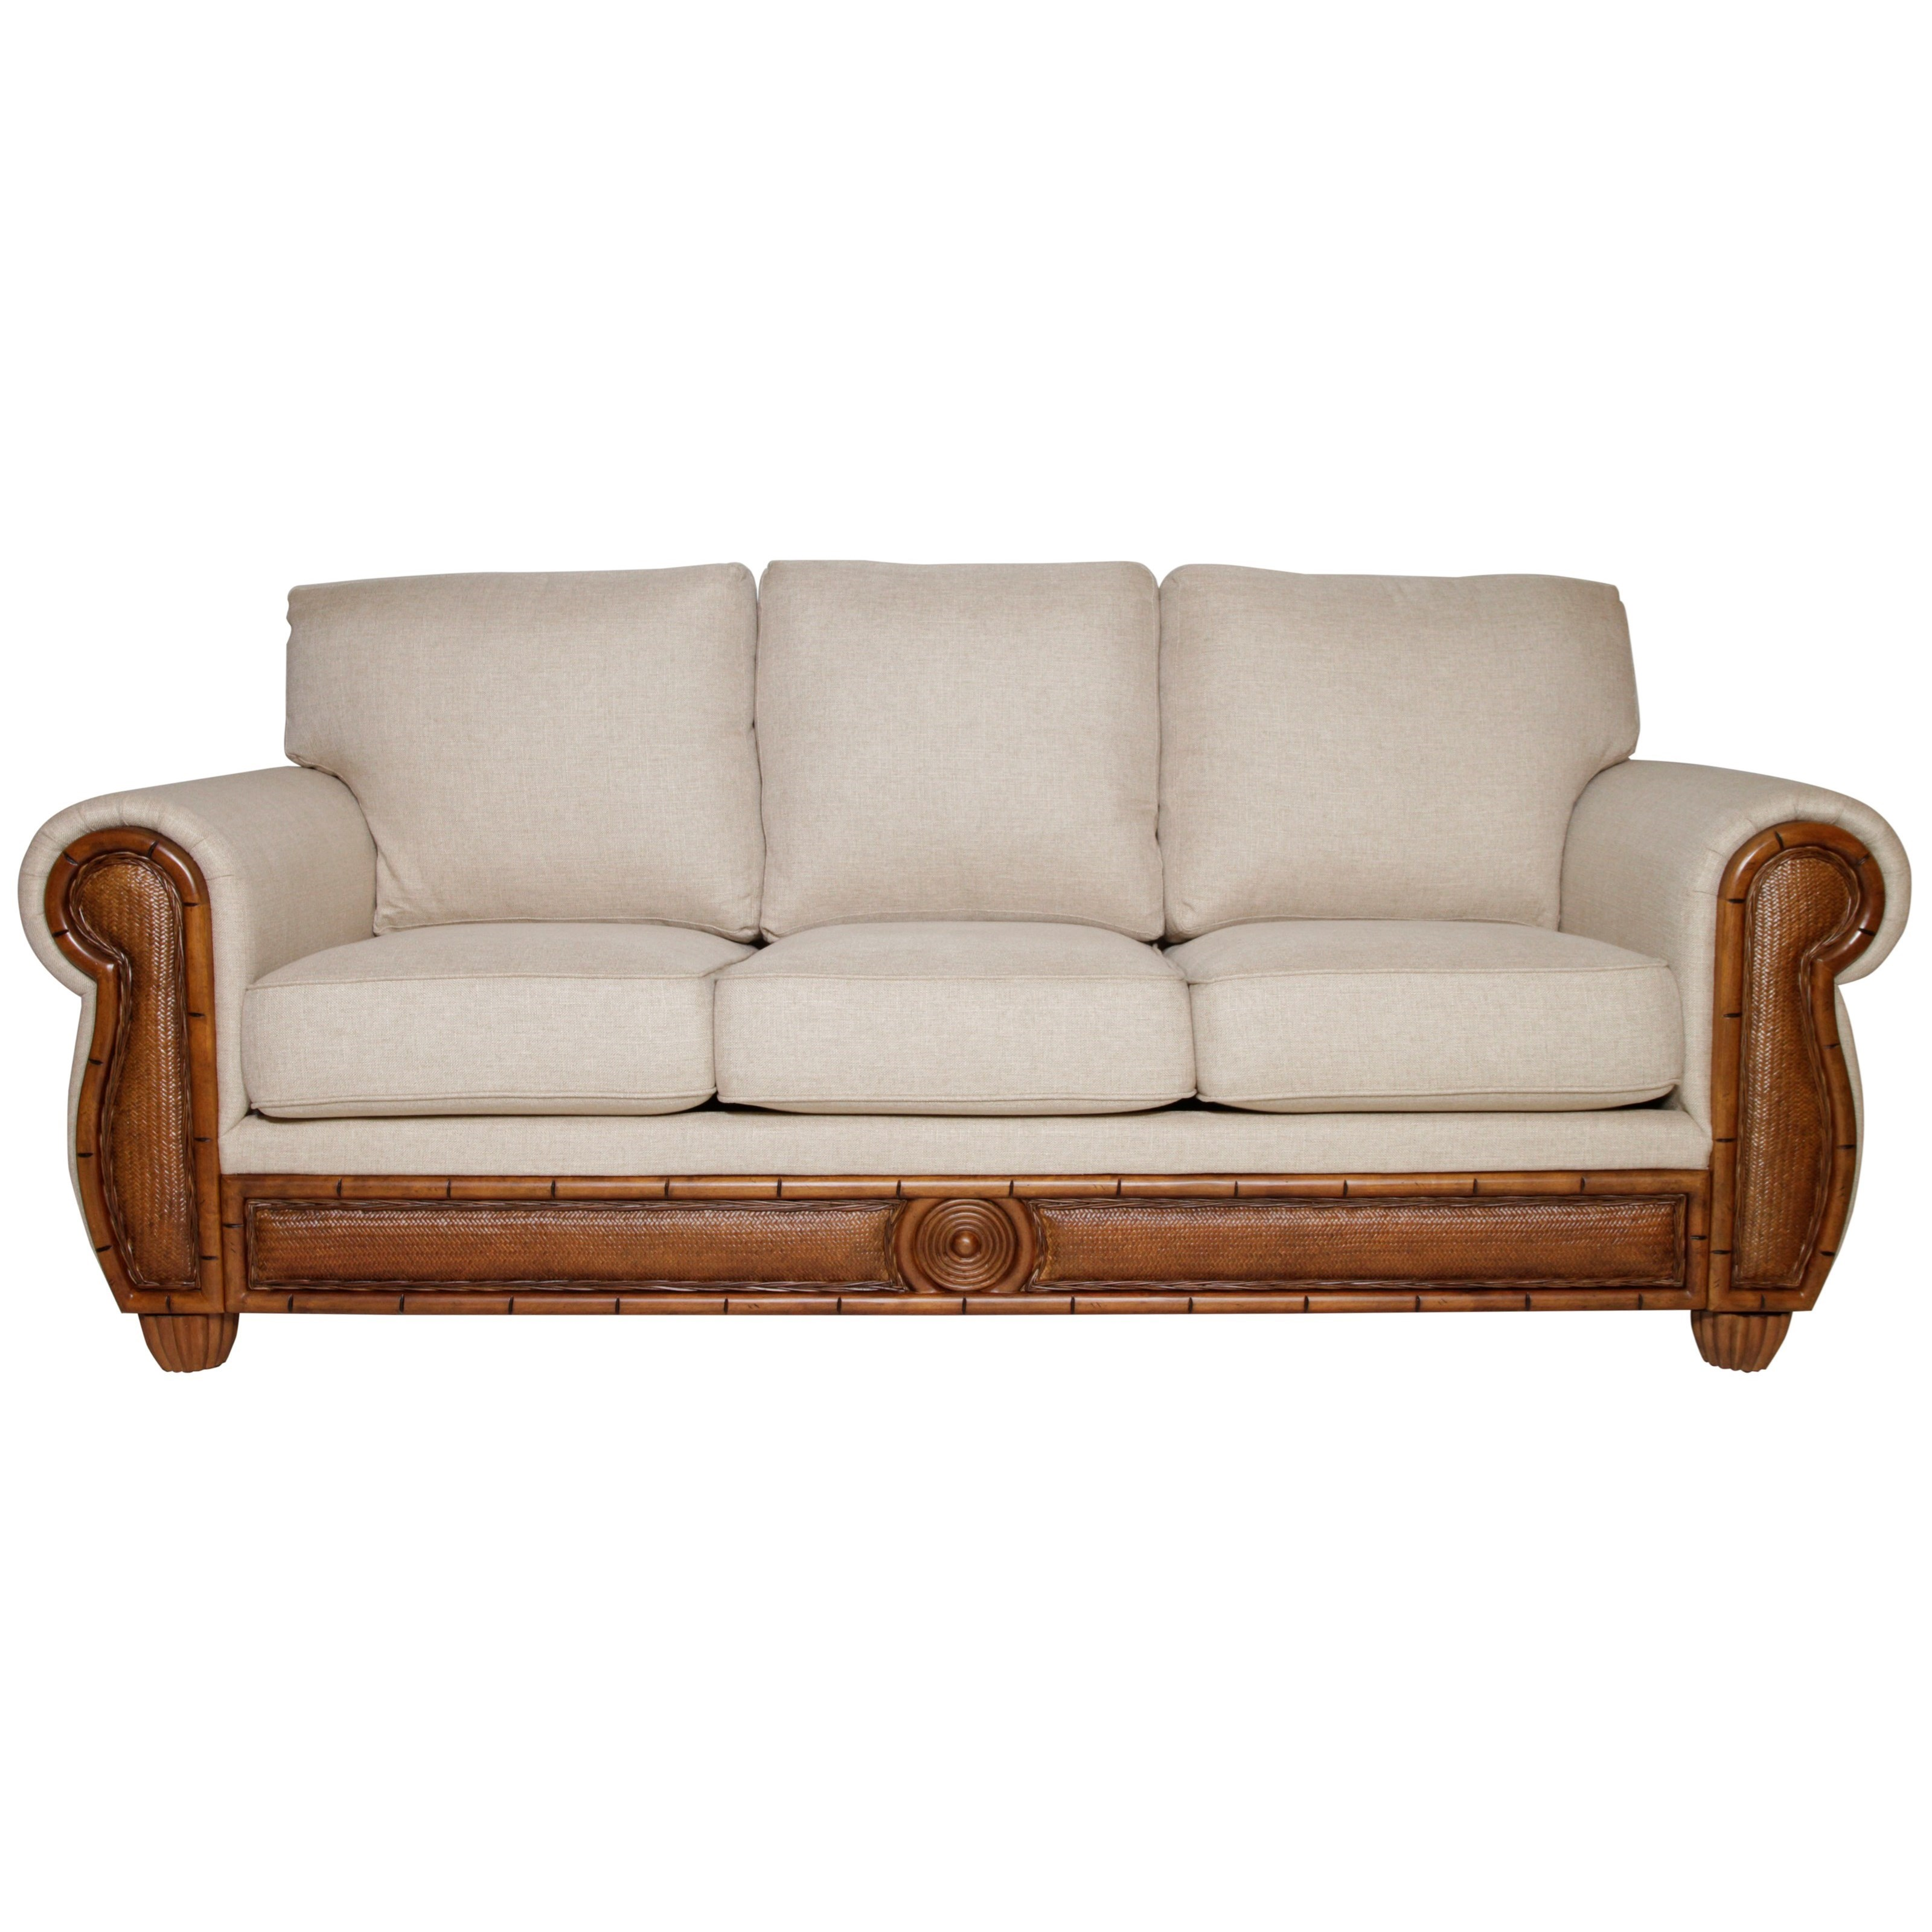 Sofa with Woven Rattan Detail